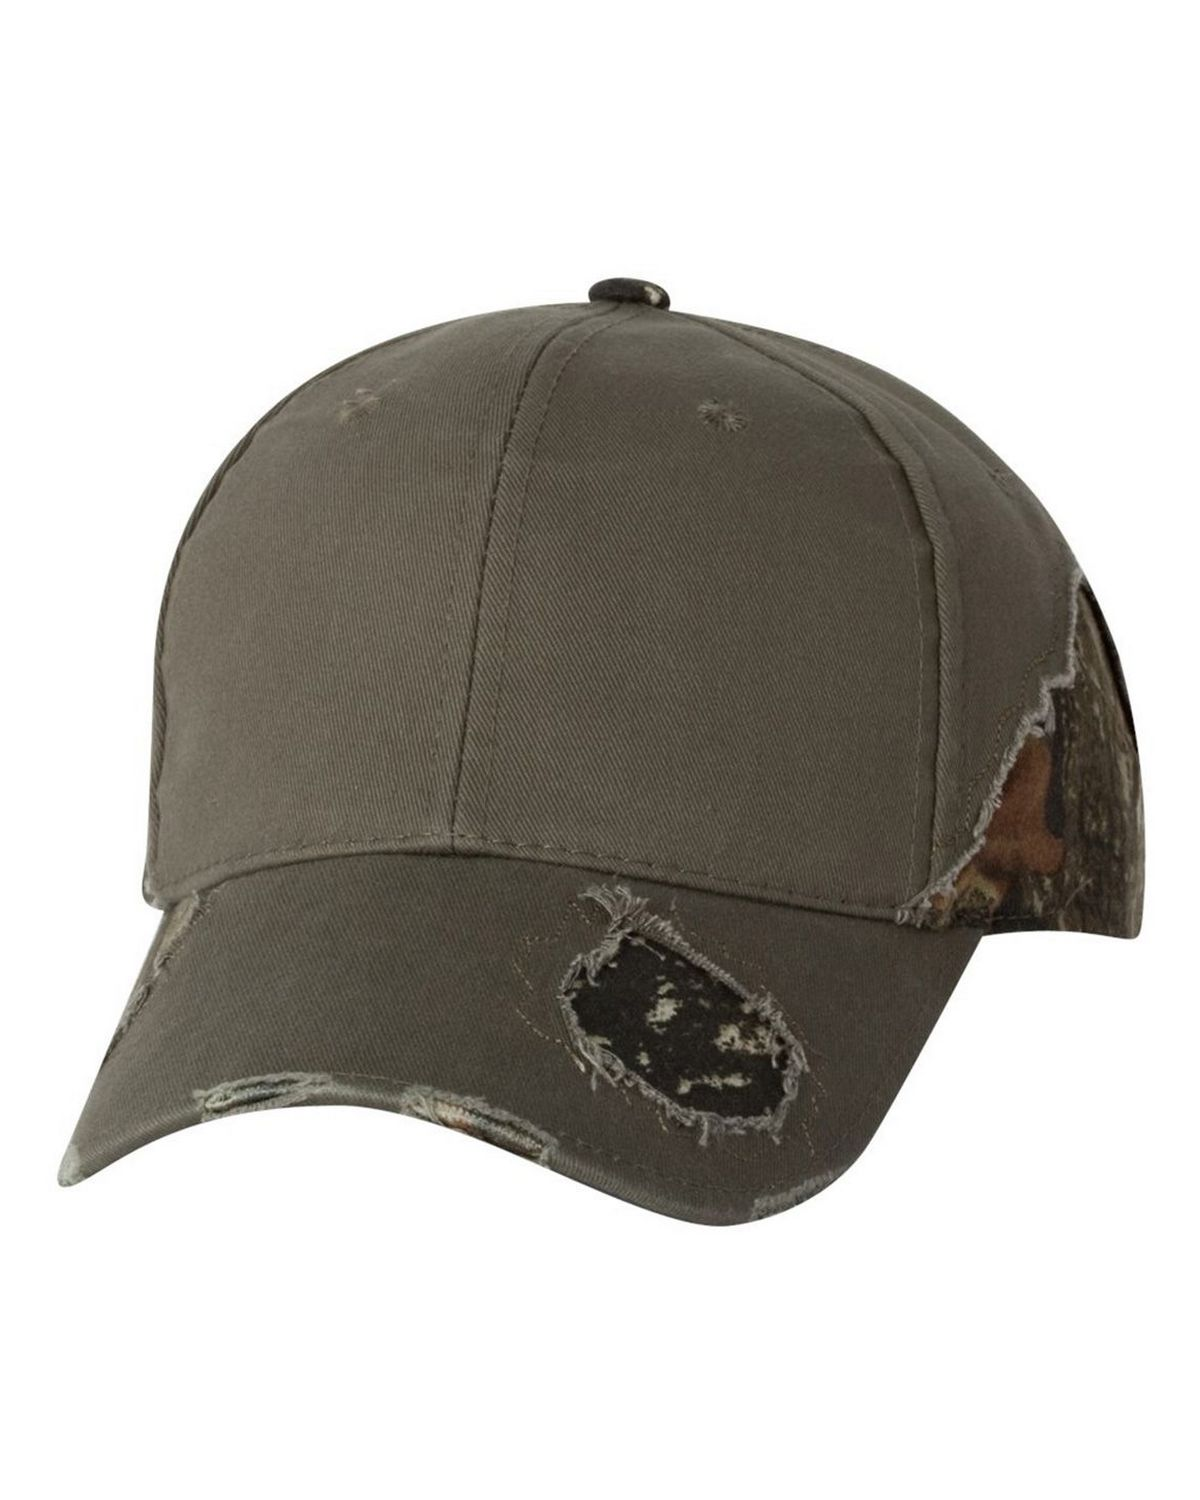 Outdoor Cap BSH350 Frayed Camouflage Cap - Free Shipping Available a1493cb872f